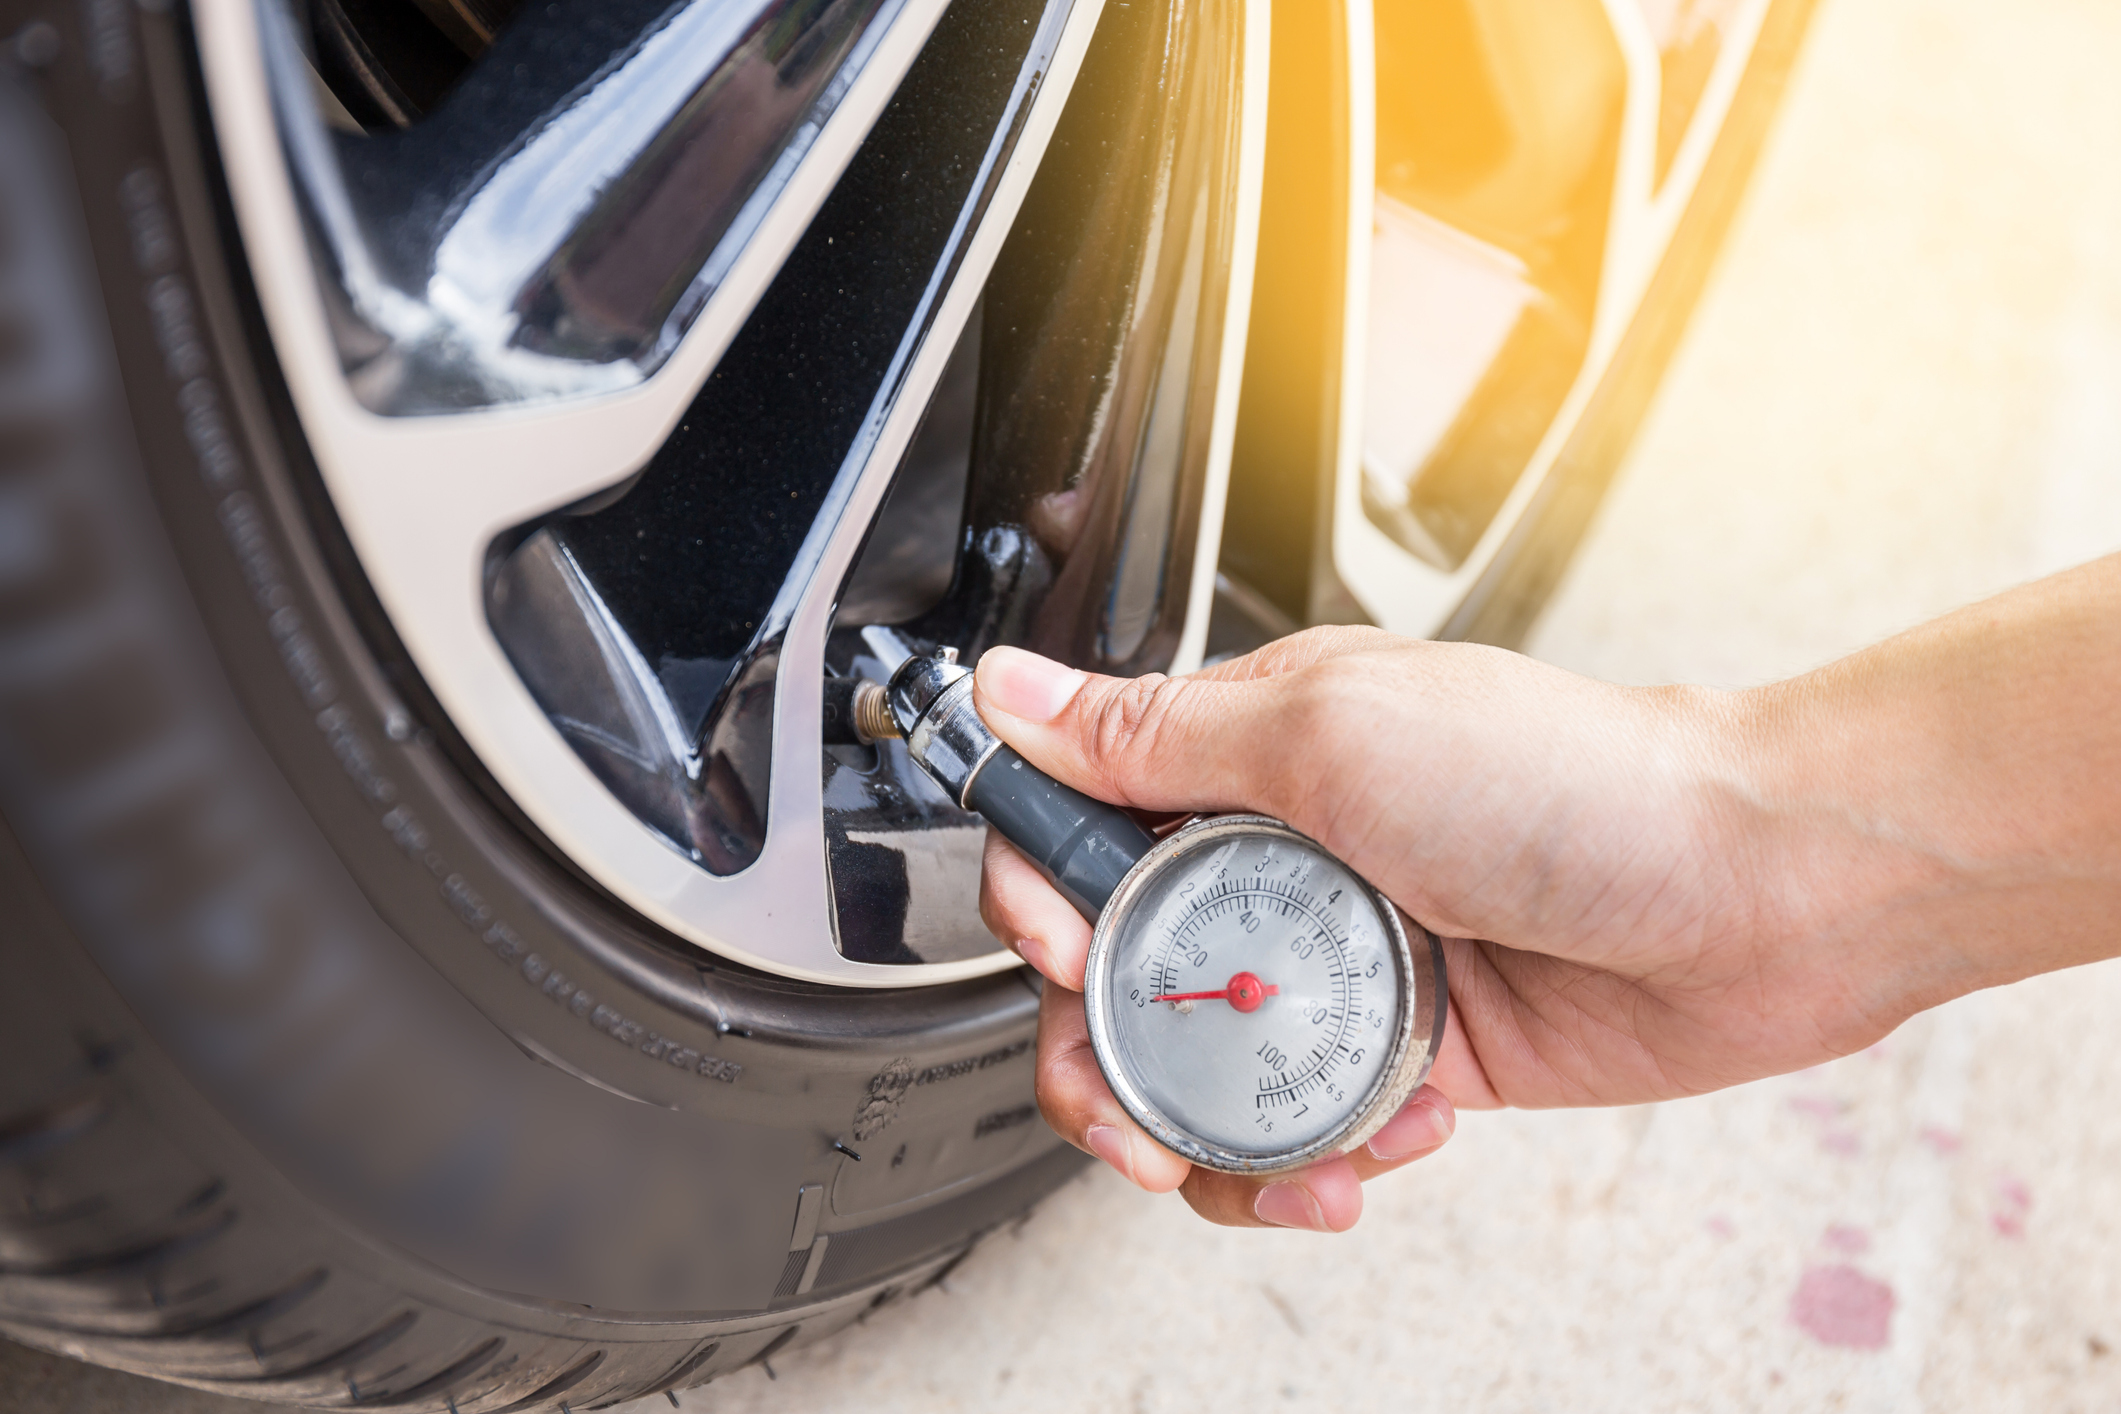 Close-Up Of Hand holding pressure gauge for car tyre pressure